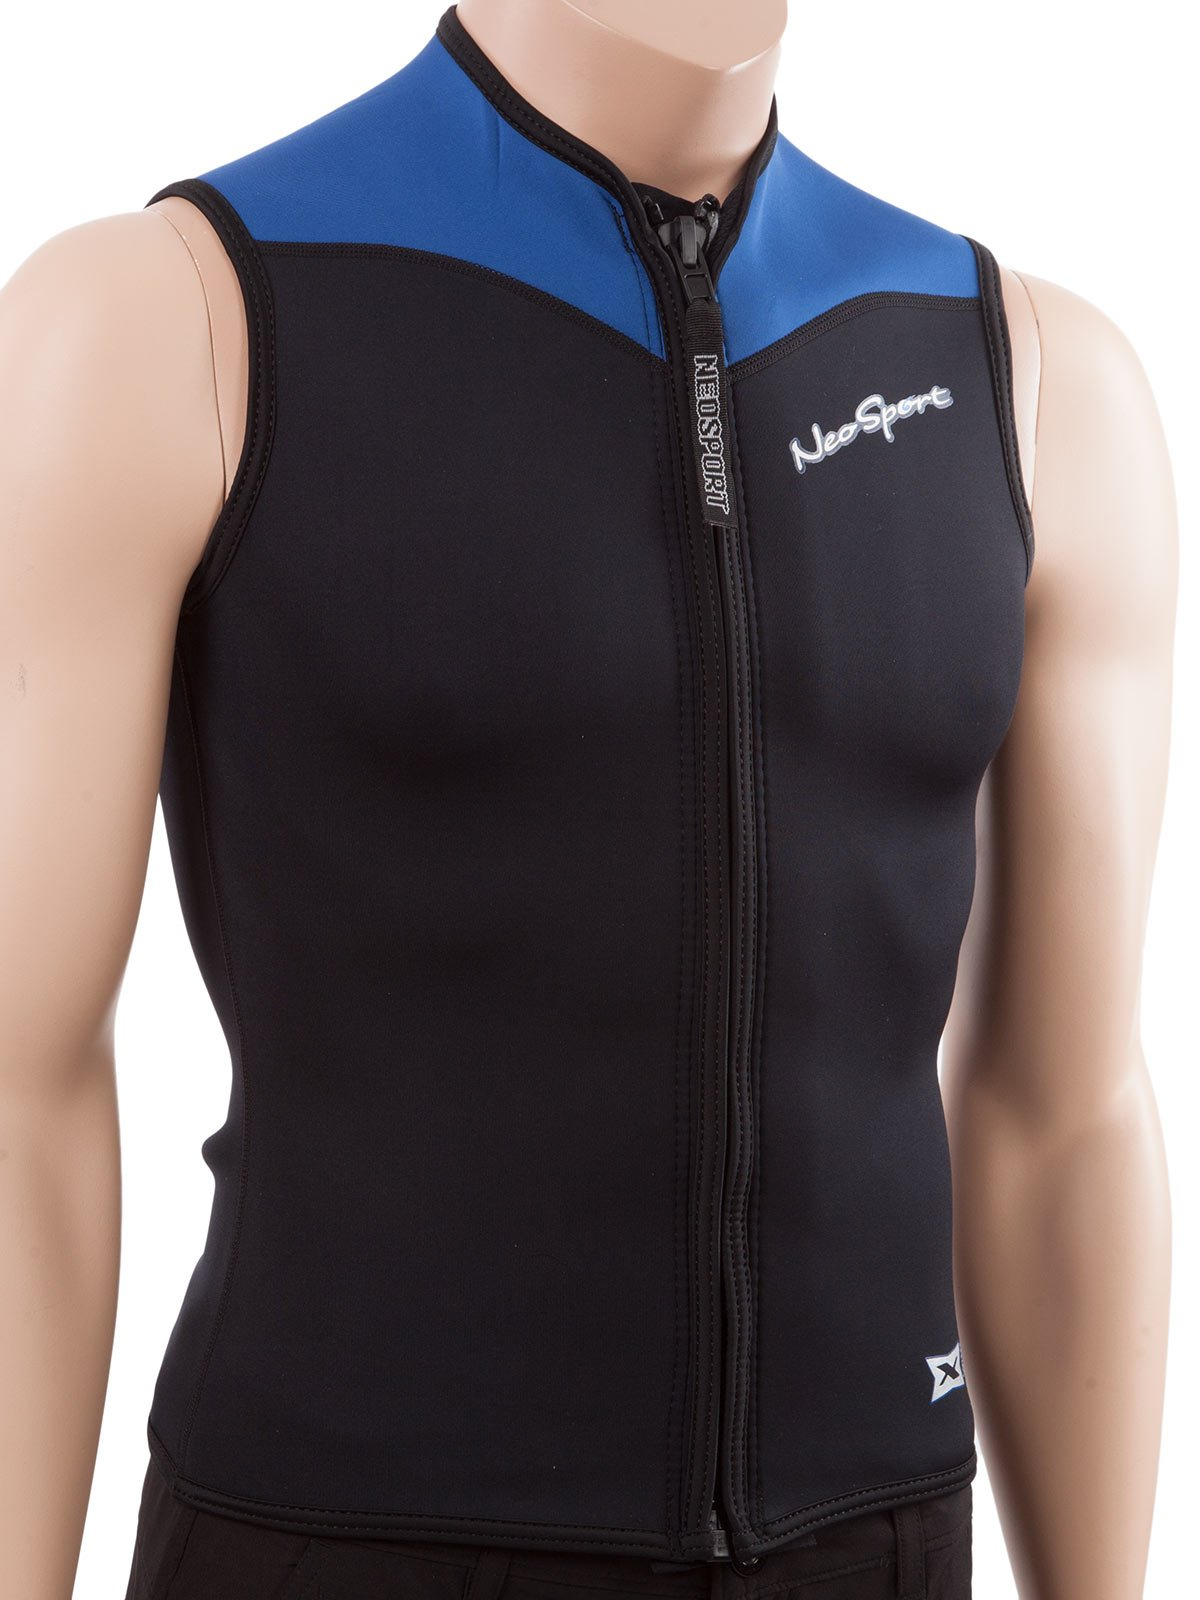 NeoSport Men's 2.5-mm XSPAN Vest (Black with Blue Trim, XXX-Large) - Water Sports, Diving & Snorkeling by Neo-Sport